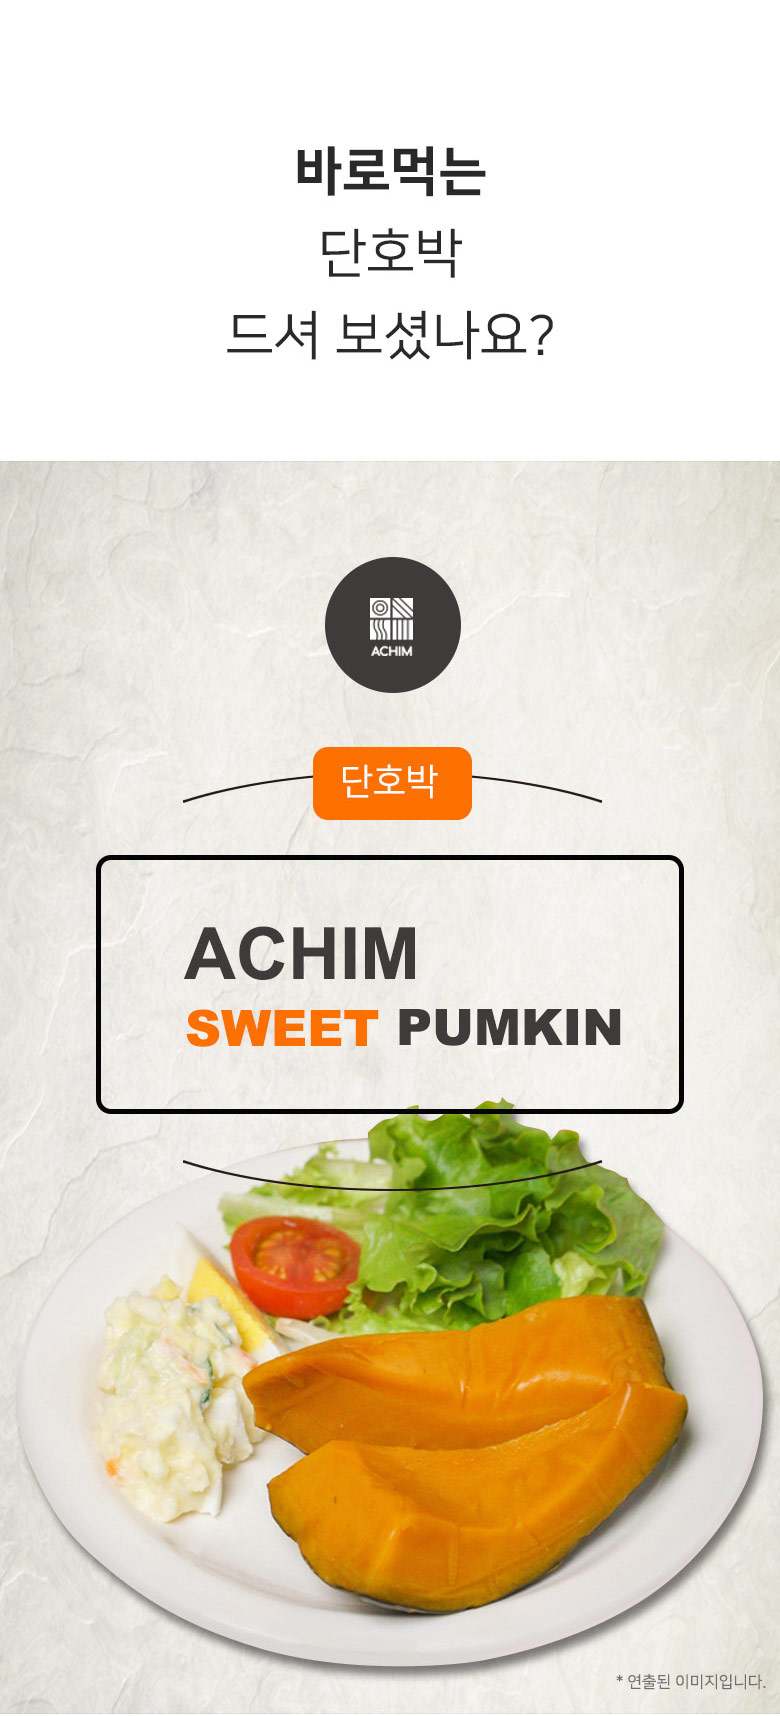 sweetpumkin_02_shop1_093634.jpg